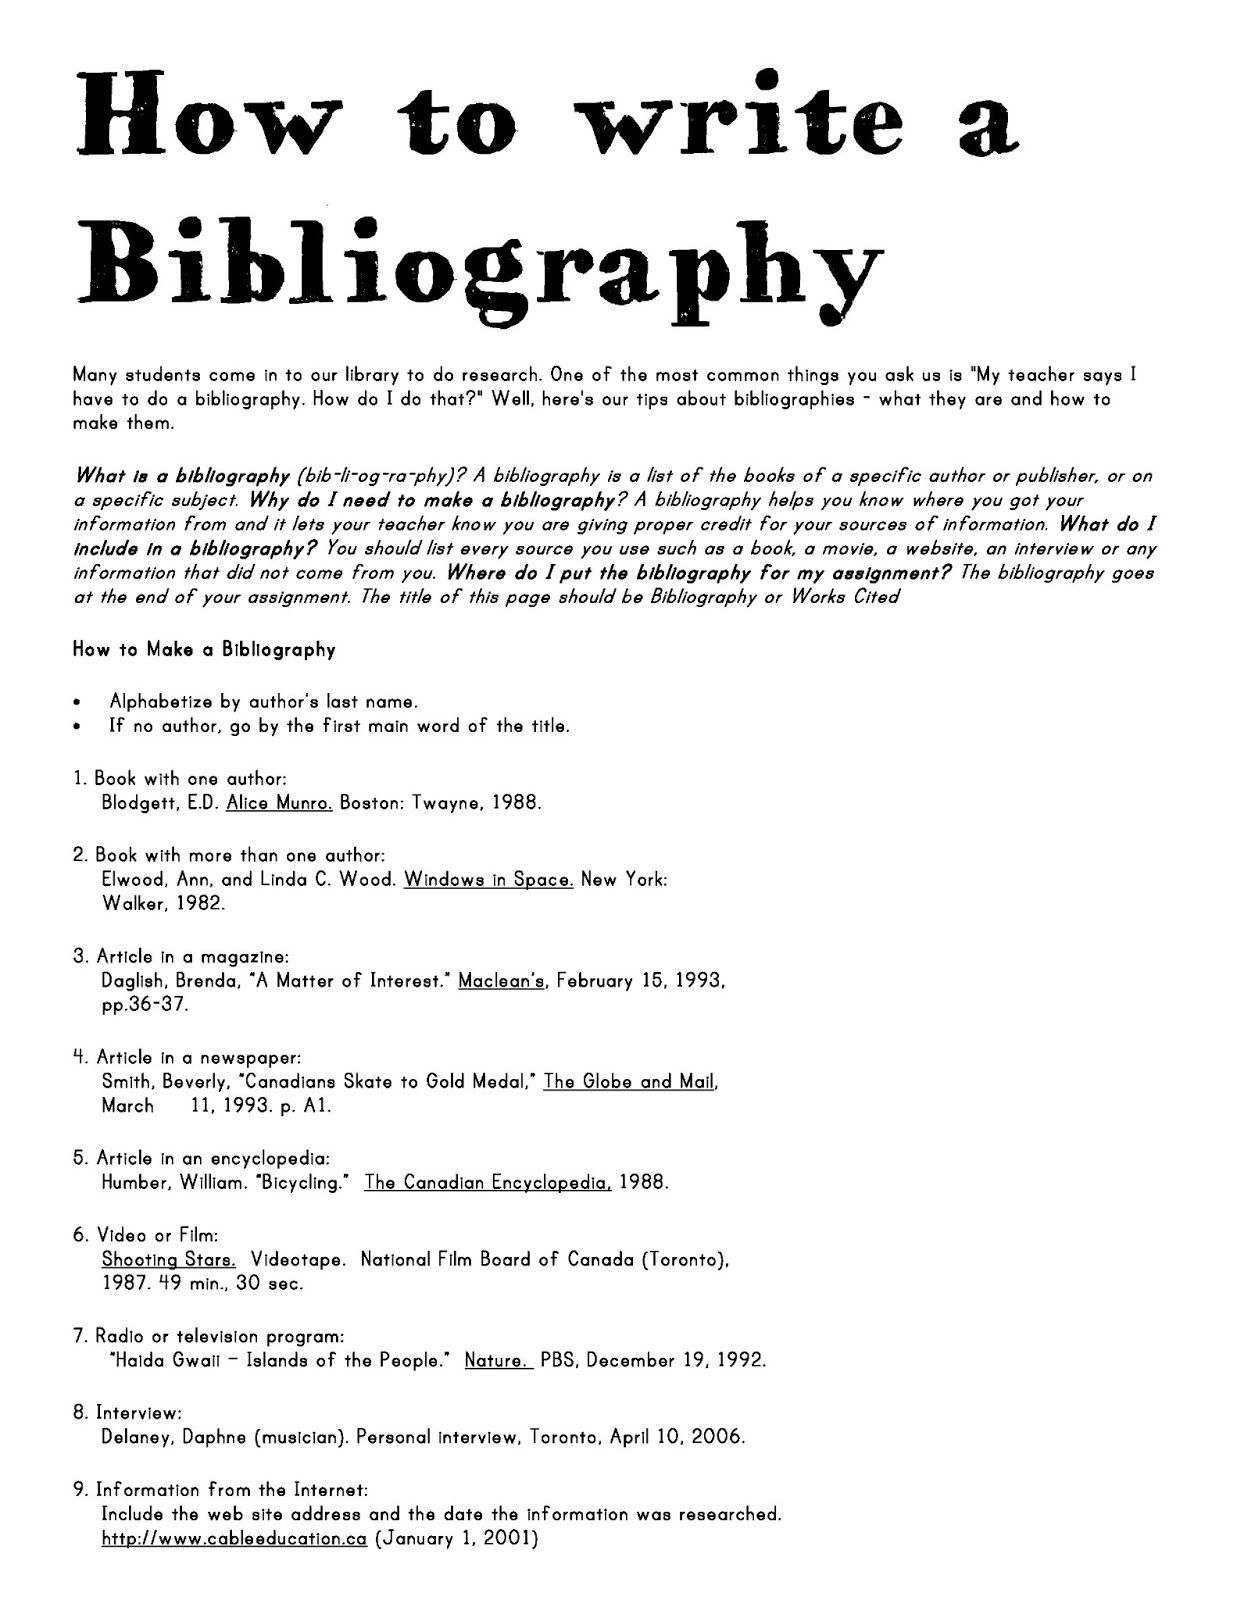 how to write a bibliography for a paper  Writing a bibliography